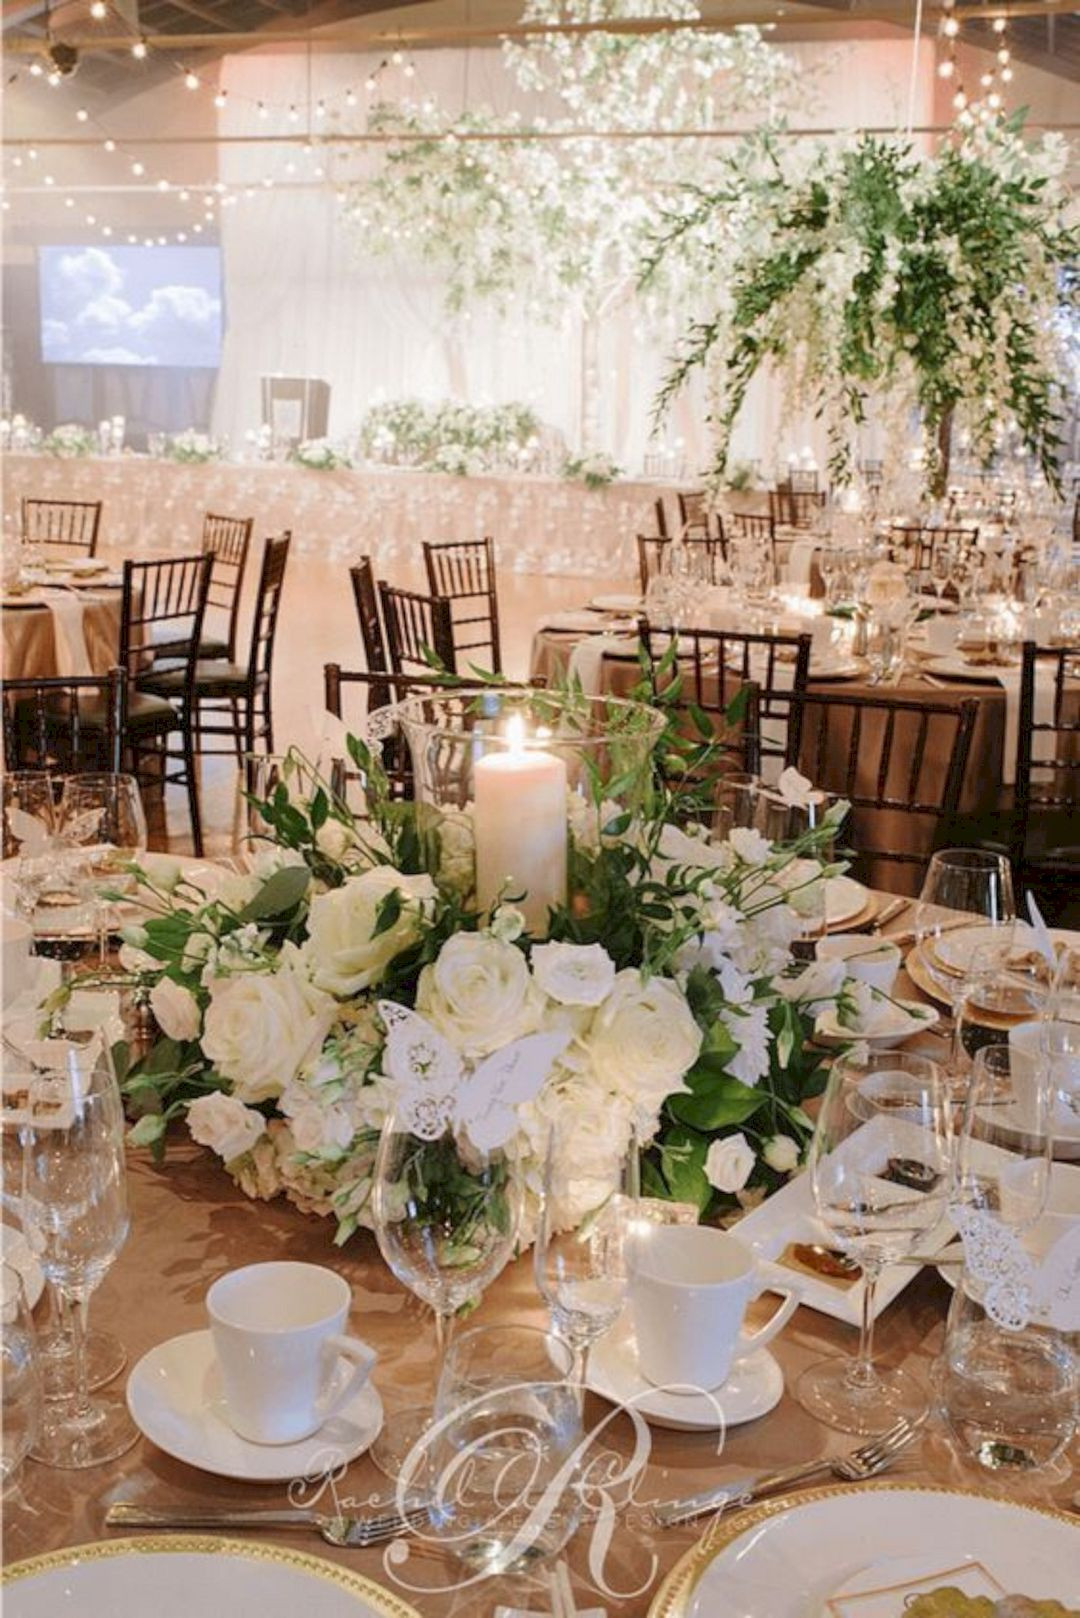 Wedding Table Decorations Lovely 18 top Wedding Reception Decorations Of Delightful 41 Ideas Wedding Table Decorations